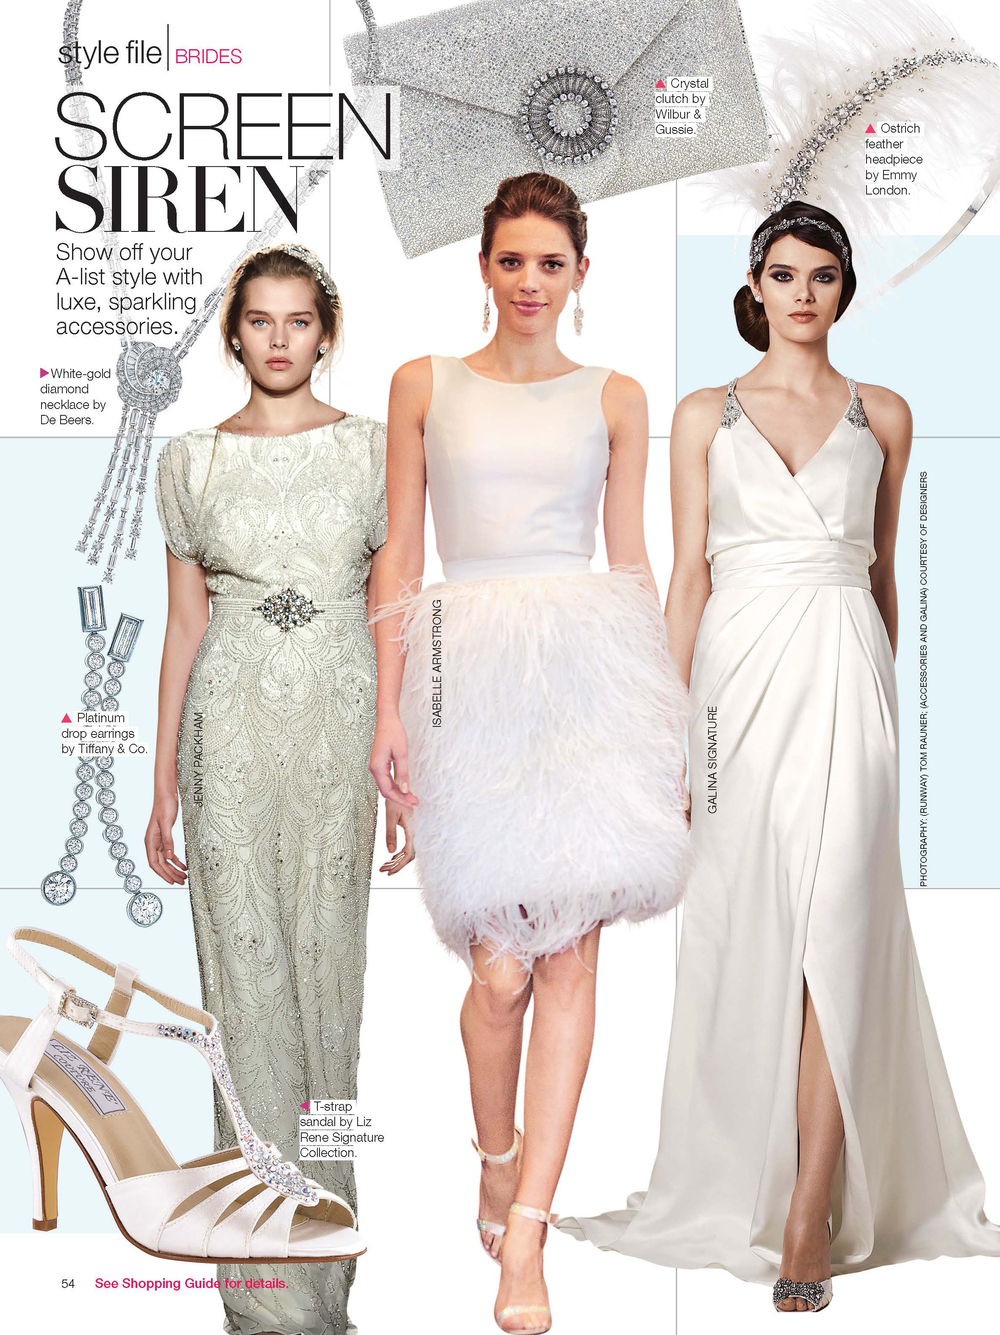 Bridal Guide Jan/Feb 2015